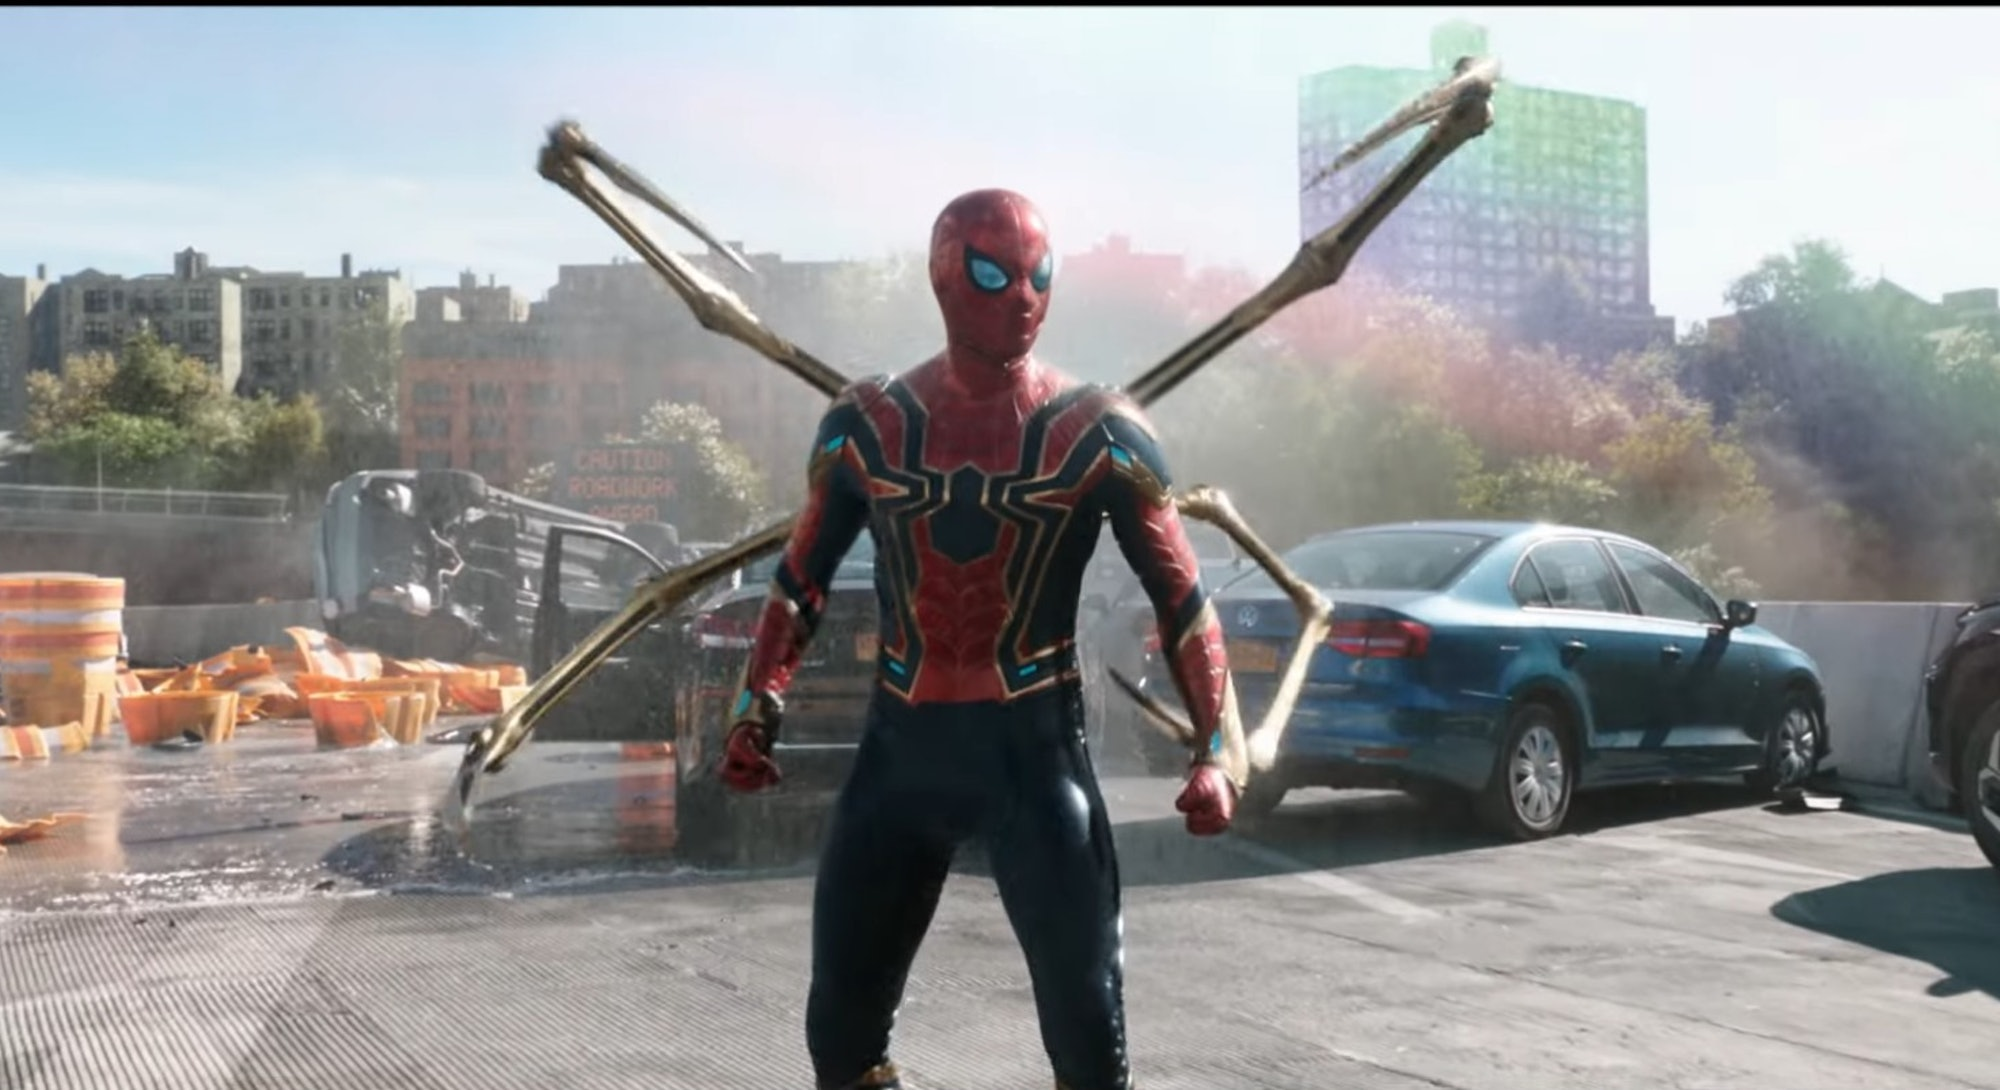 Spider-Man in new suit in No Way Home trailer